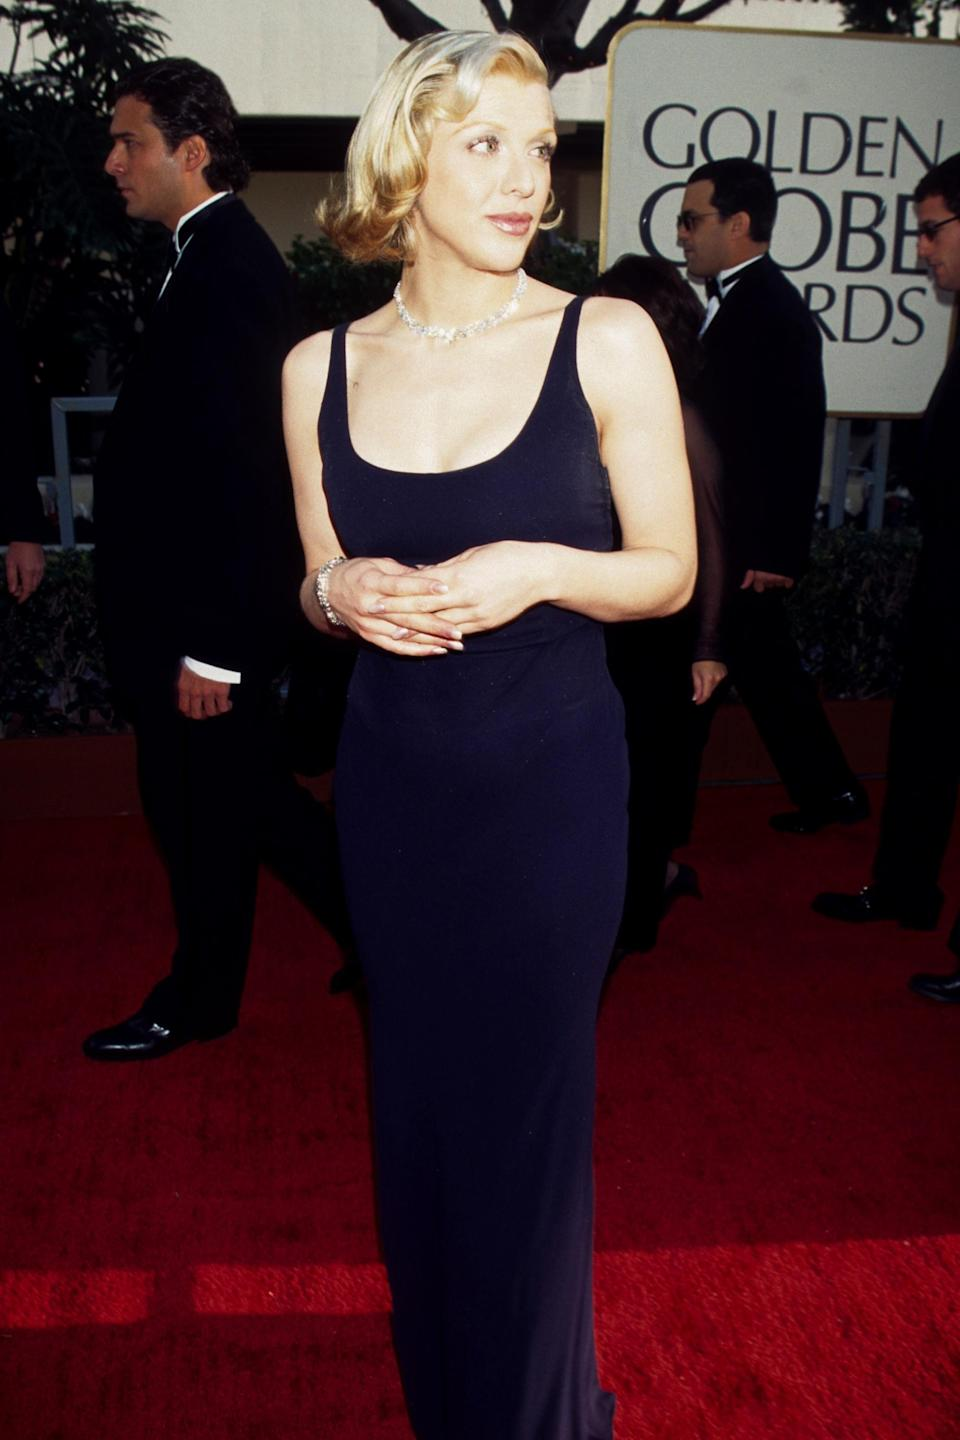 """<strong><h2>1997</h2></strong><br>Courtney Love has had her fair share of fashion faux pas moments. But after seeing her in this navy blue garb, we're reminded that this grunge goddess often cleans up <em>real good. </em><br><br><em>Courtney Love in a navy blue dress. </em><span class=""""copyright"""">Photo: Ke.Mazur/WireImage.</span>"""